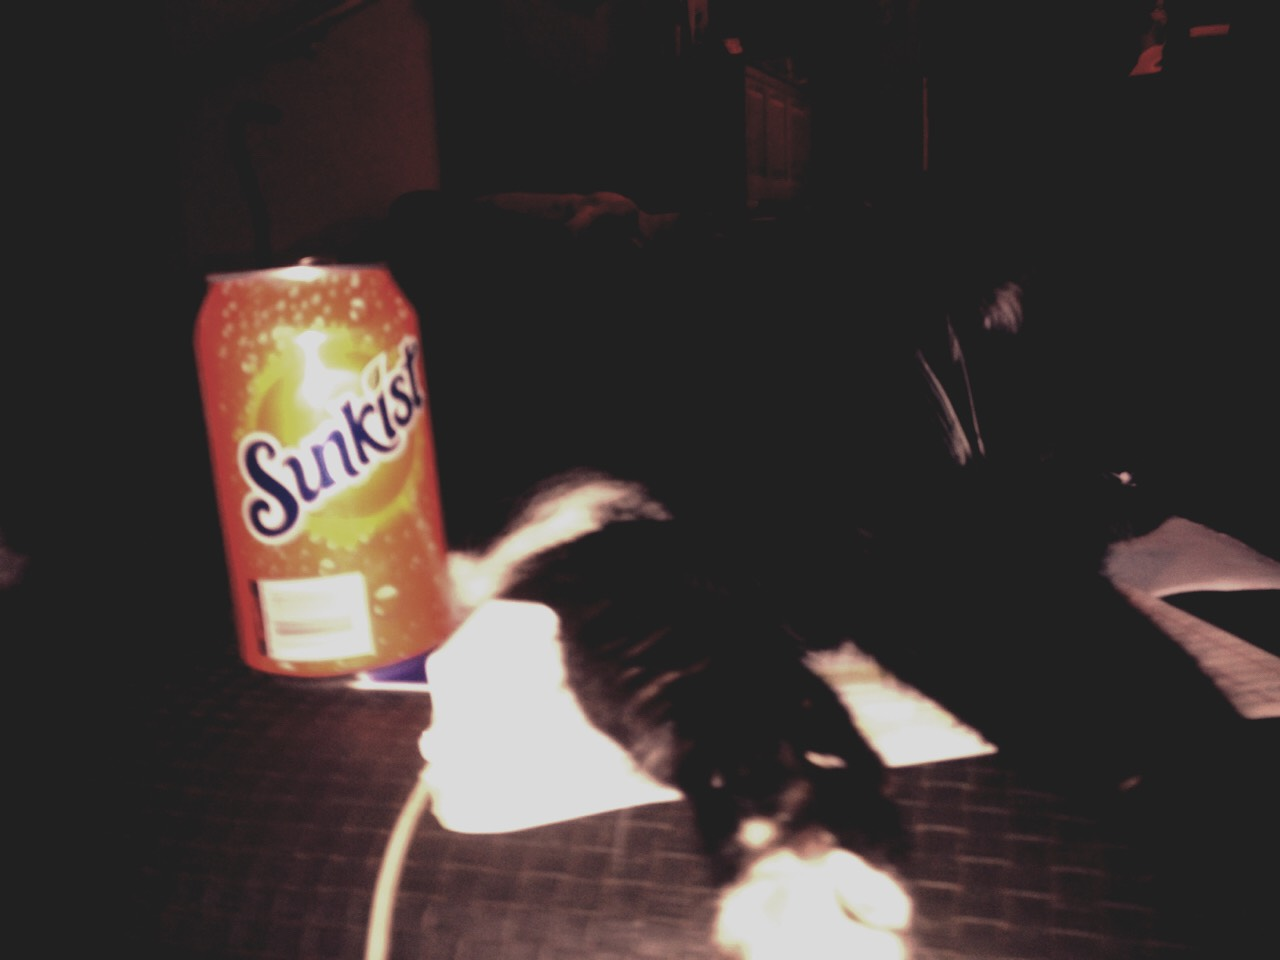 Just let the cat lay next to your drink and watch the magic!! Btw this does not acutely work it is just a joke!!!